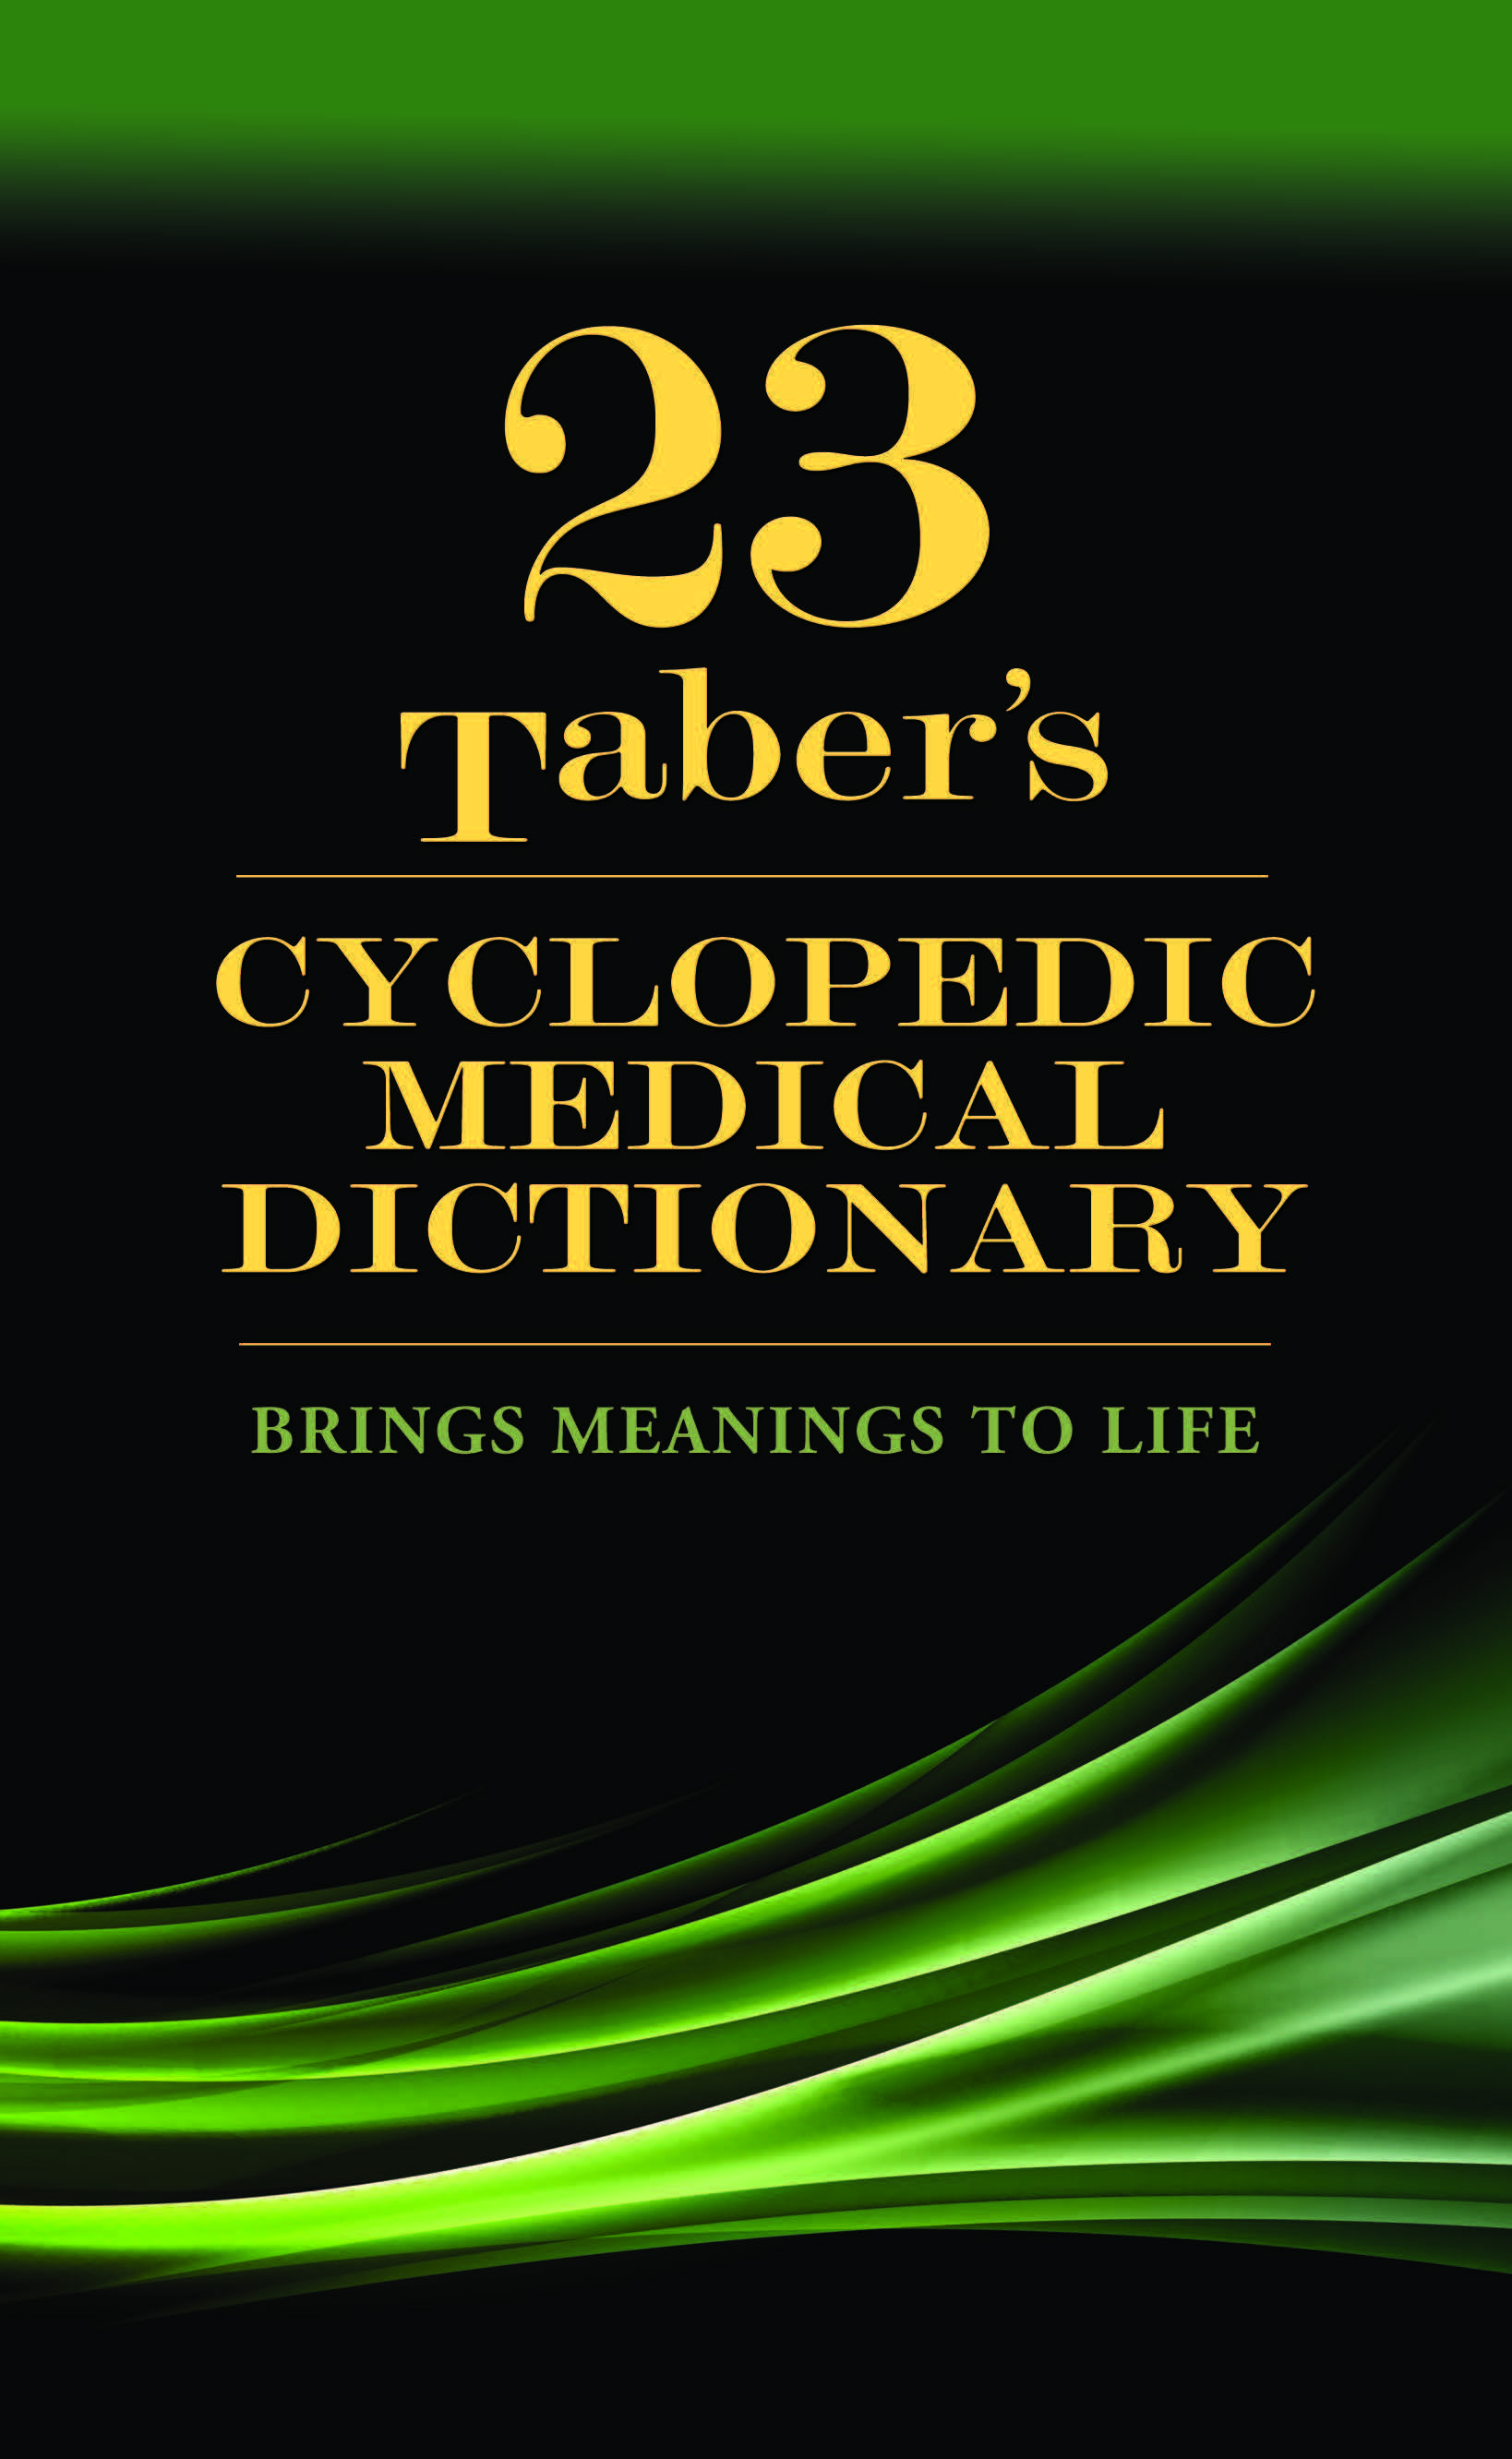 Taber's Cyclopedic Medical Dictionary 23rd Edition PDF Free Download